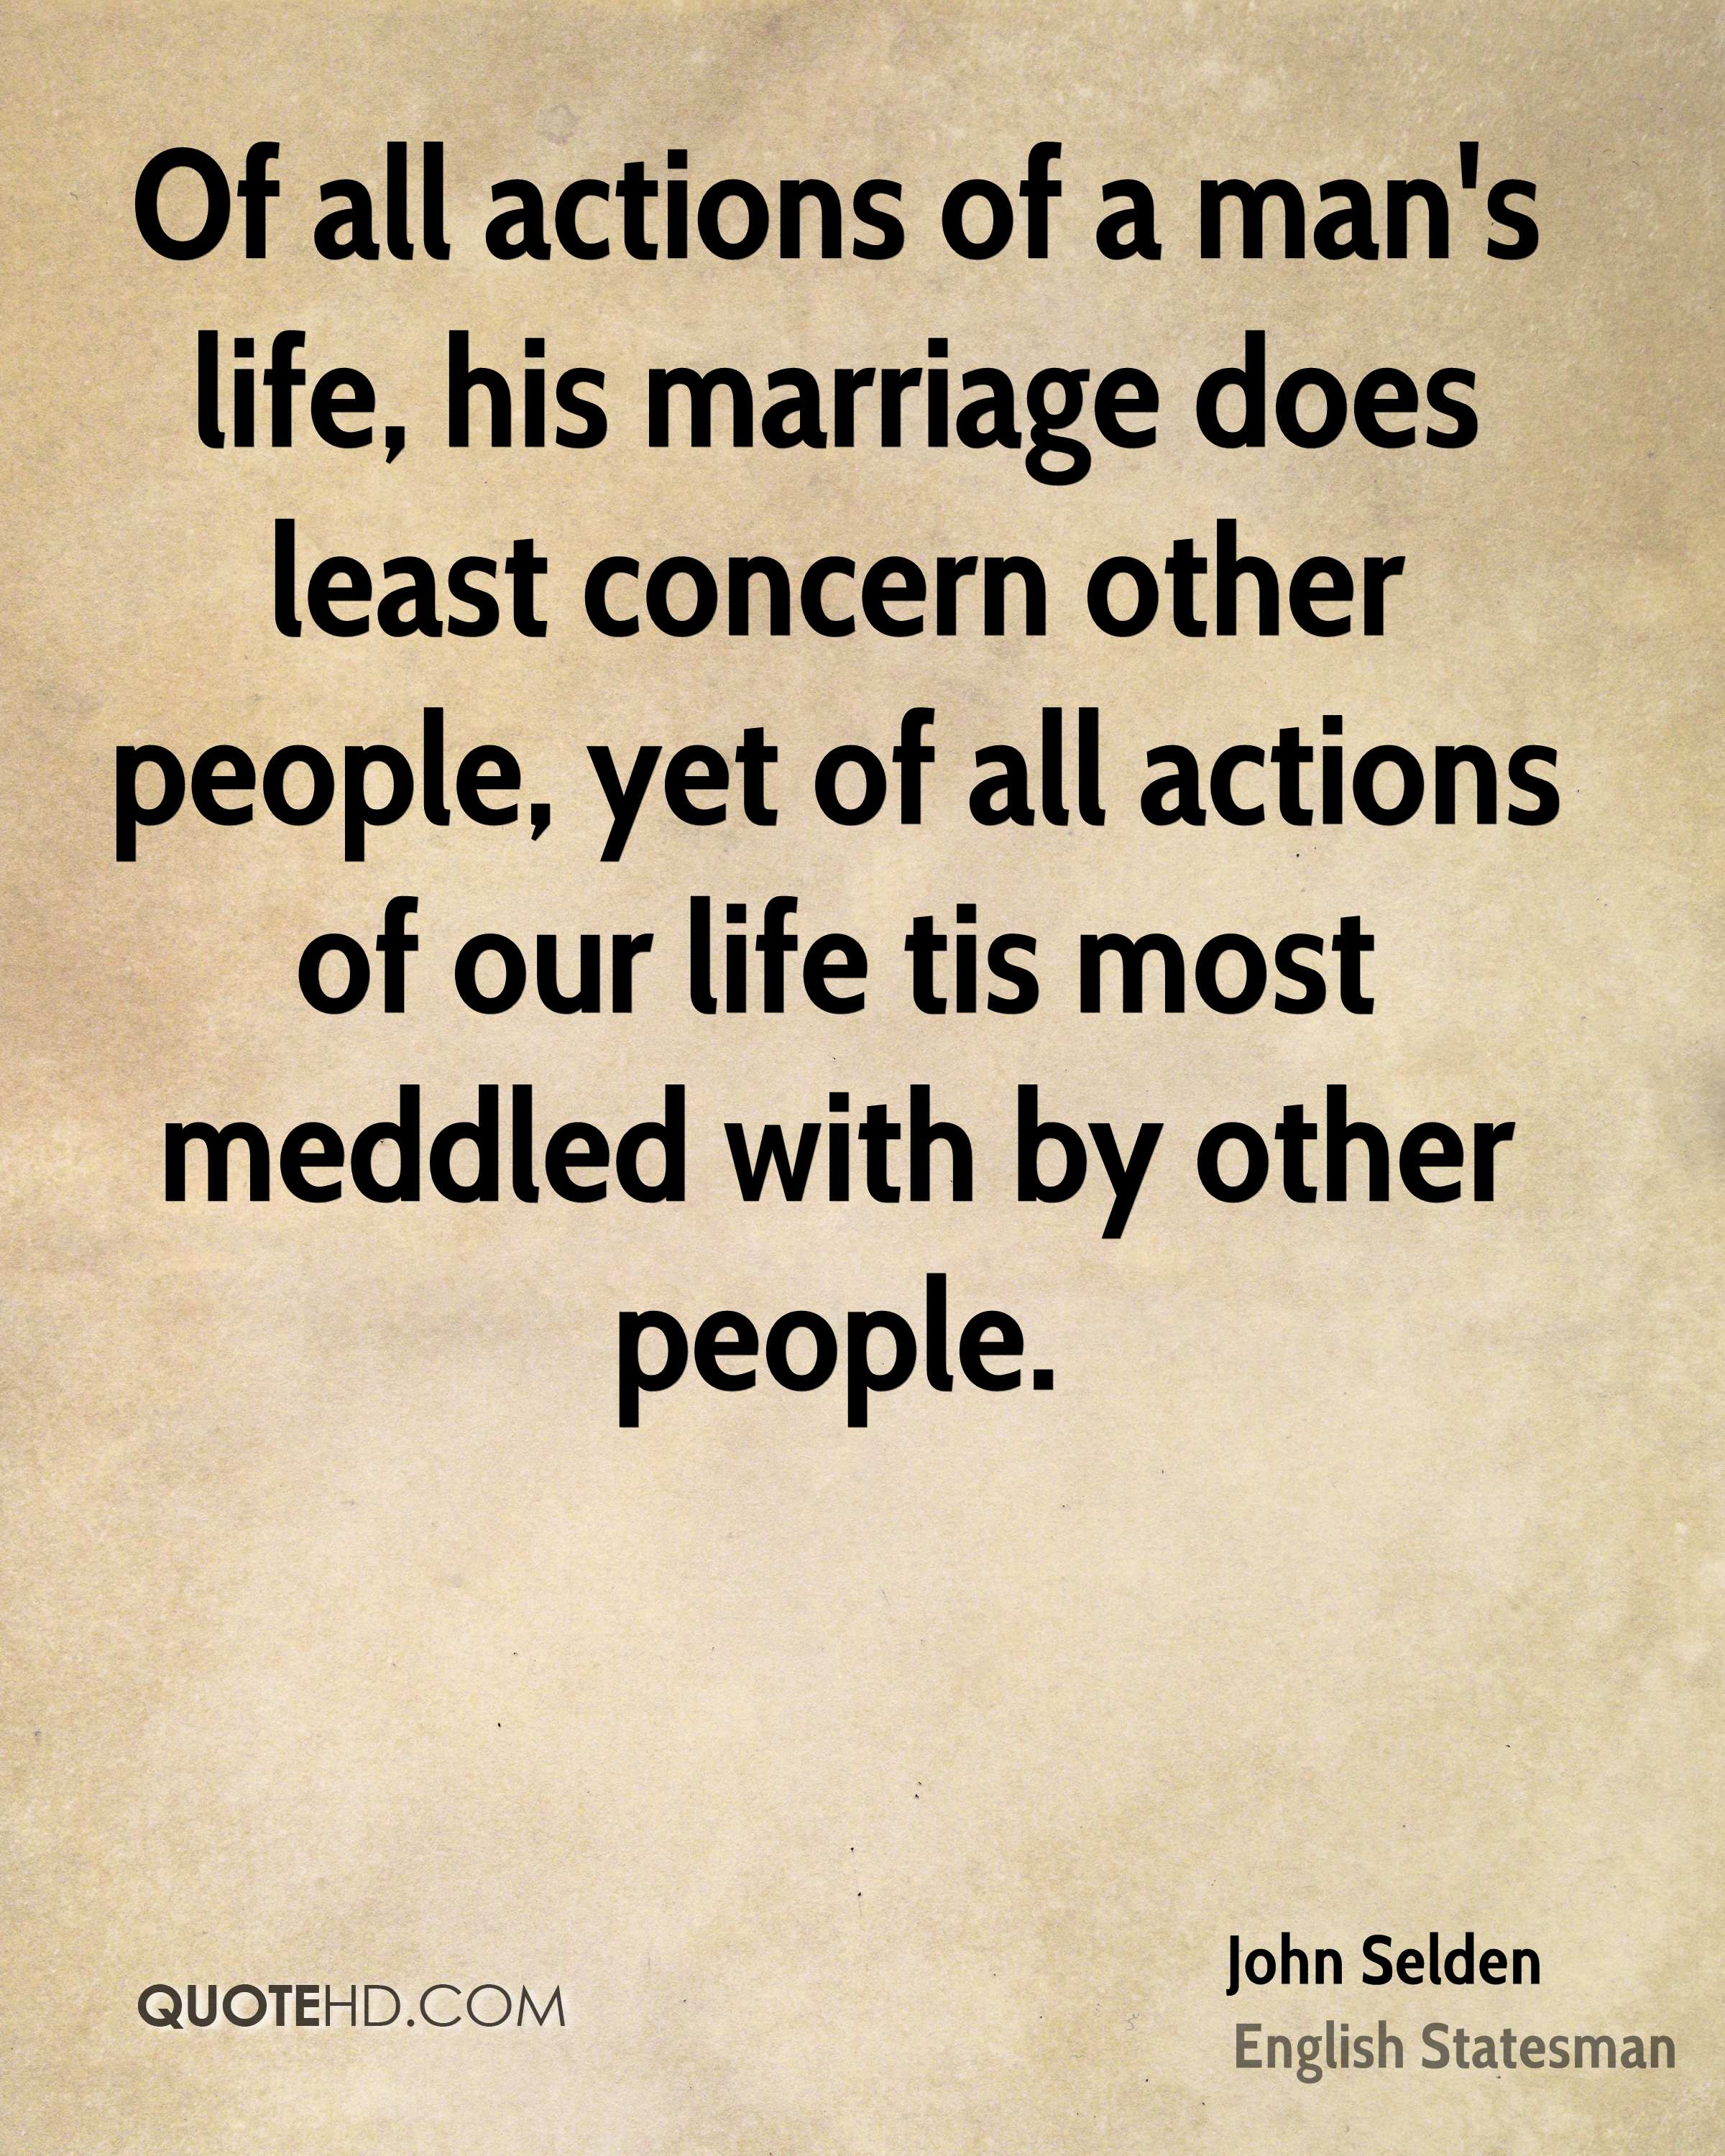 Of all actions of a man's life, his marriage does least concern other people, yet of all actions of our life tis most meddled with by other people.